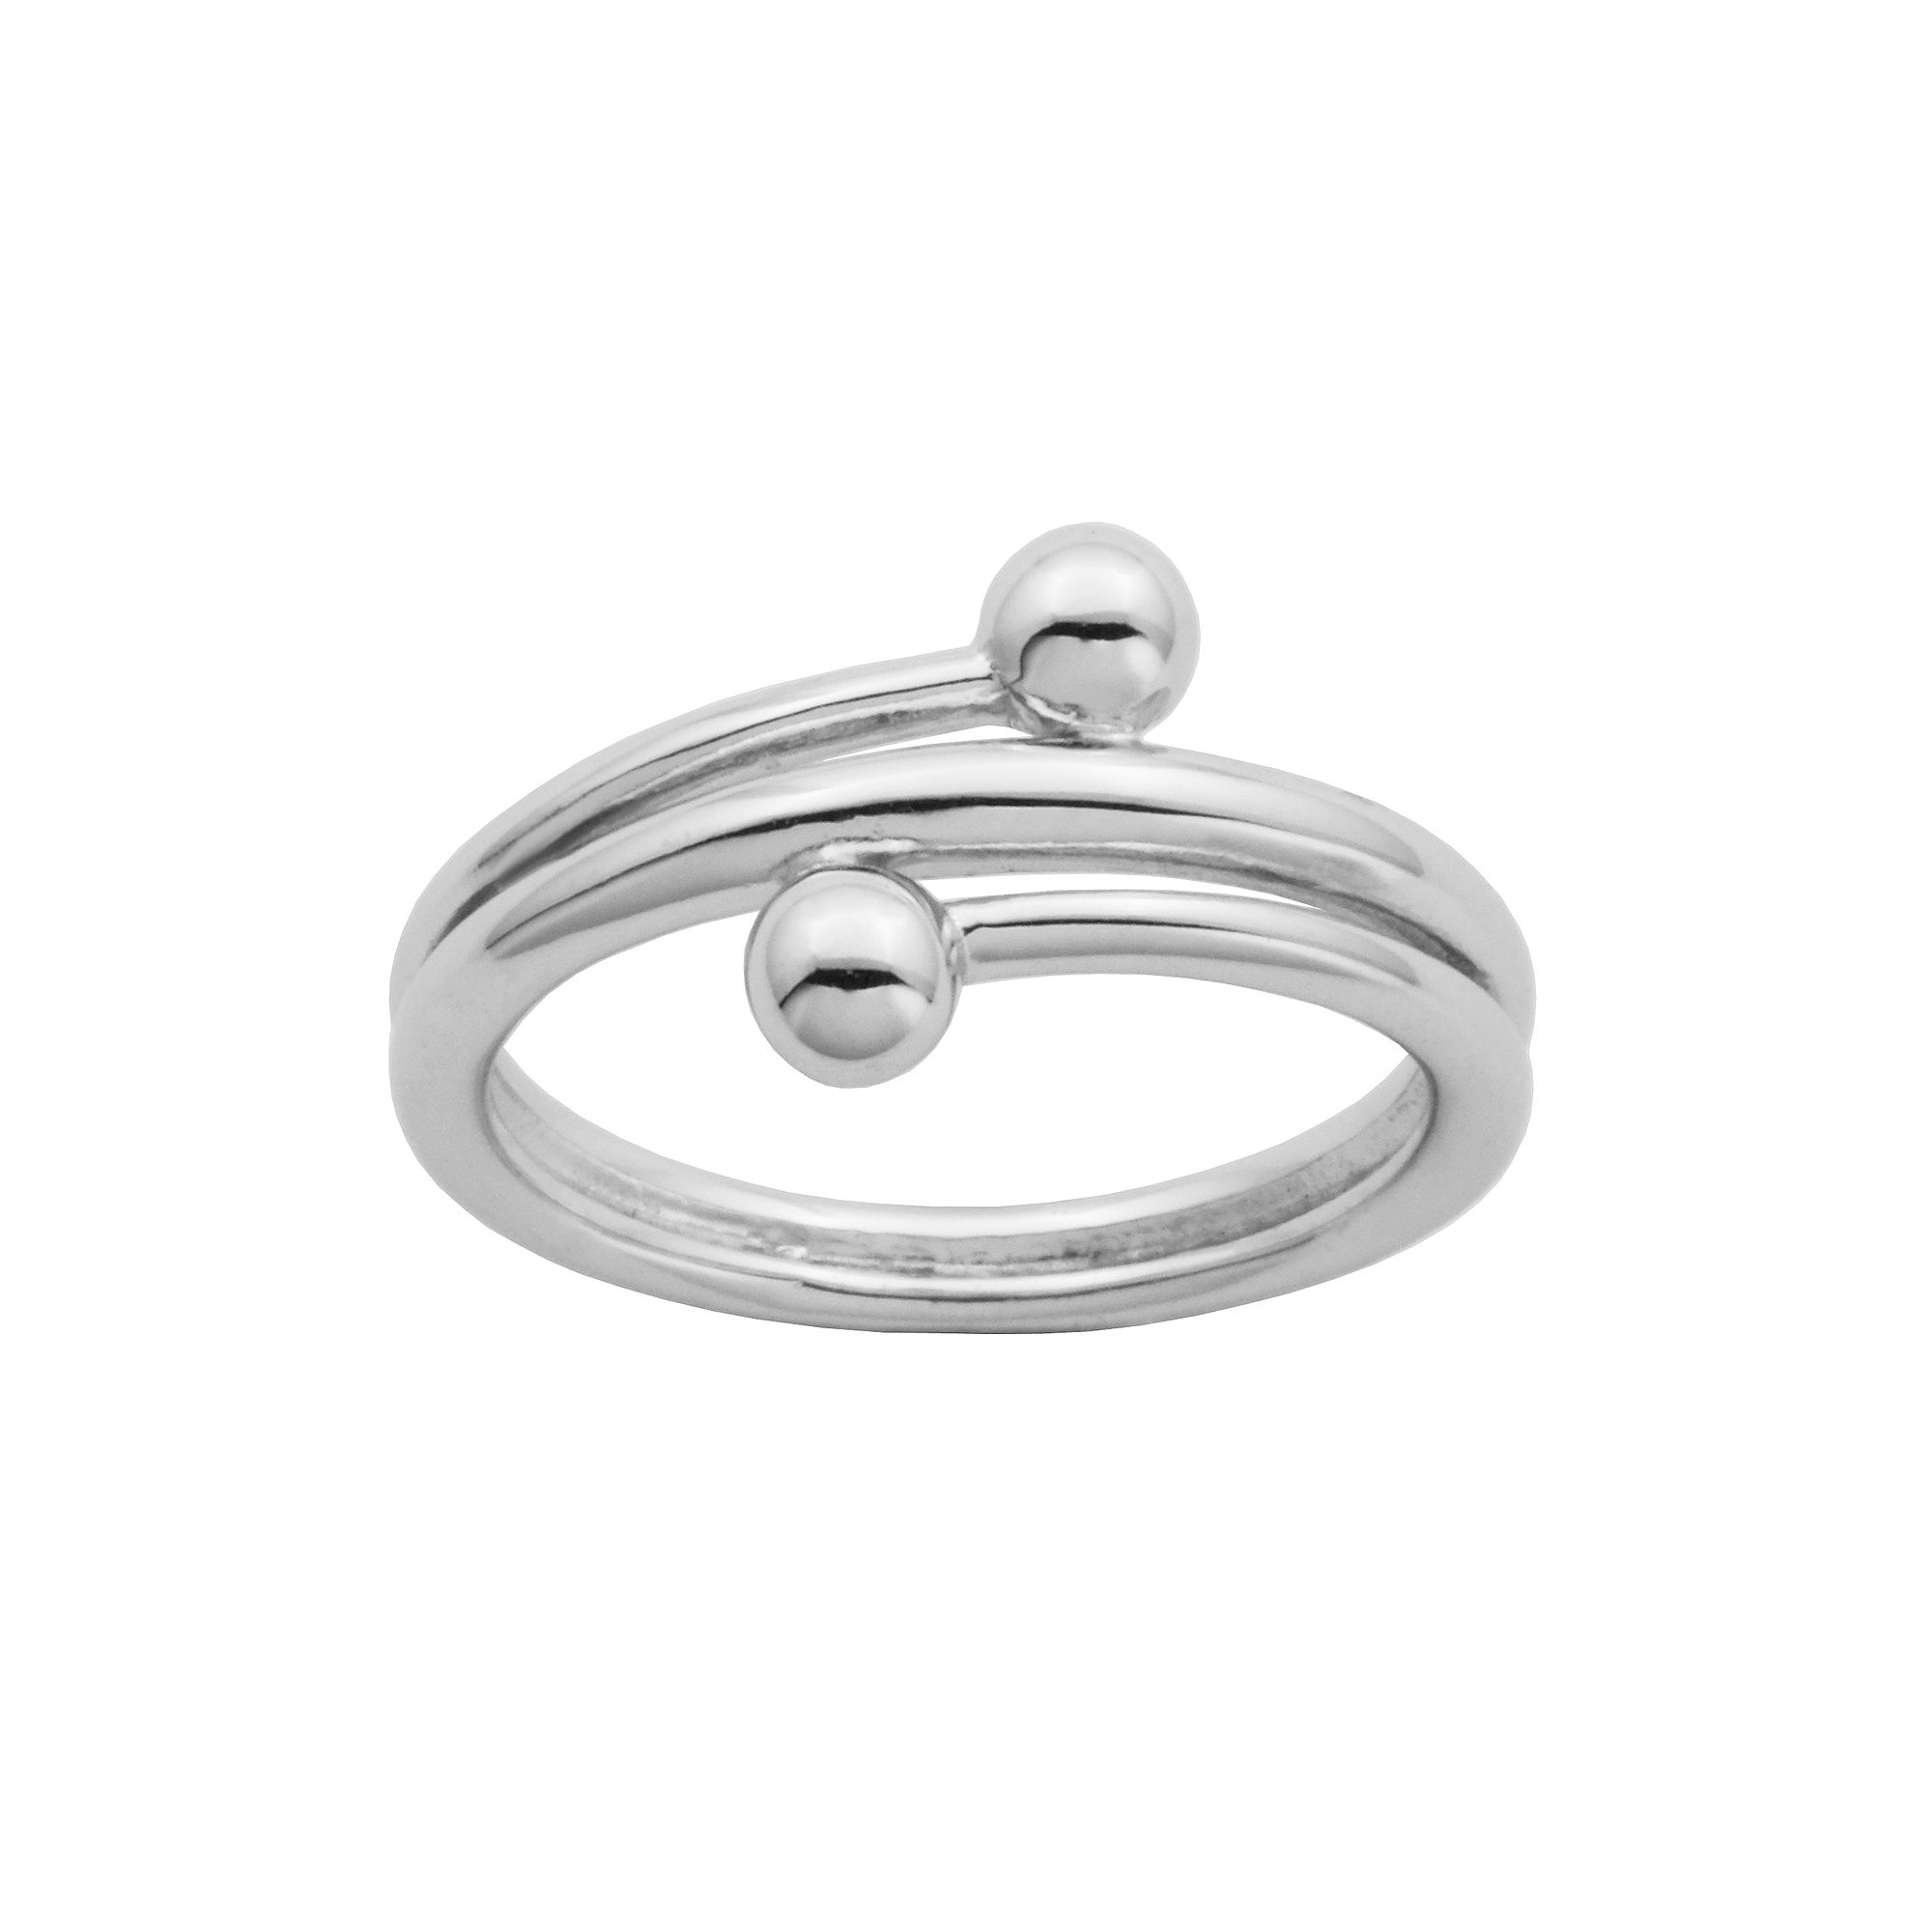 Bypass 20Rings jcpenney jewelry wedding rings Sterling Silver Double Bead Bypass Ring JCPenney